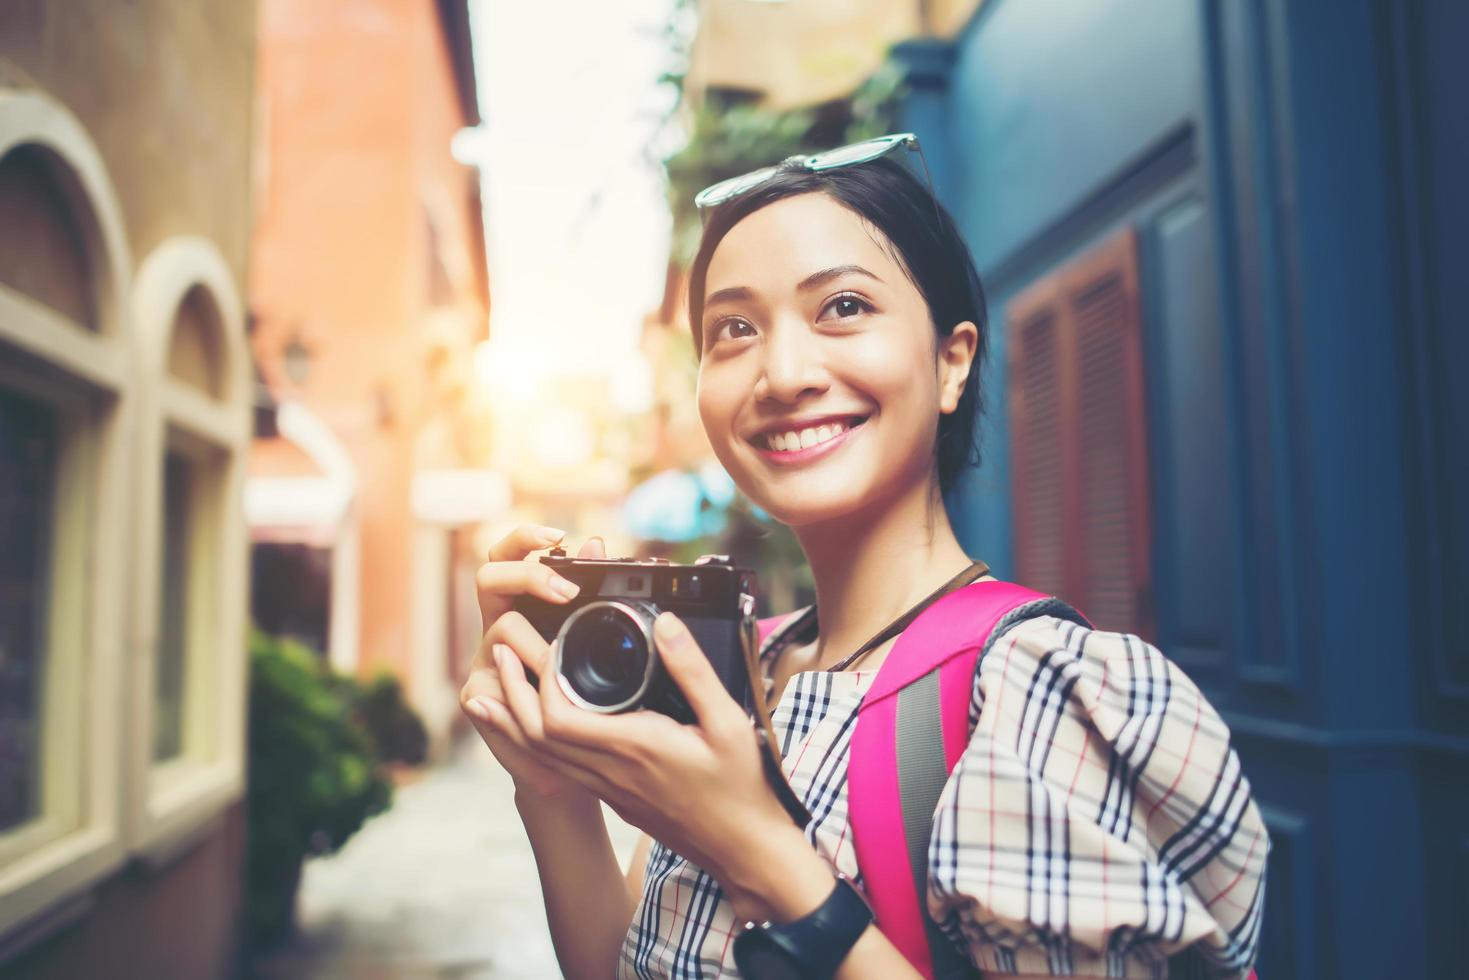 Close-up of a young hipster woman traveling and taking photos with her camera